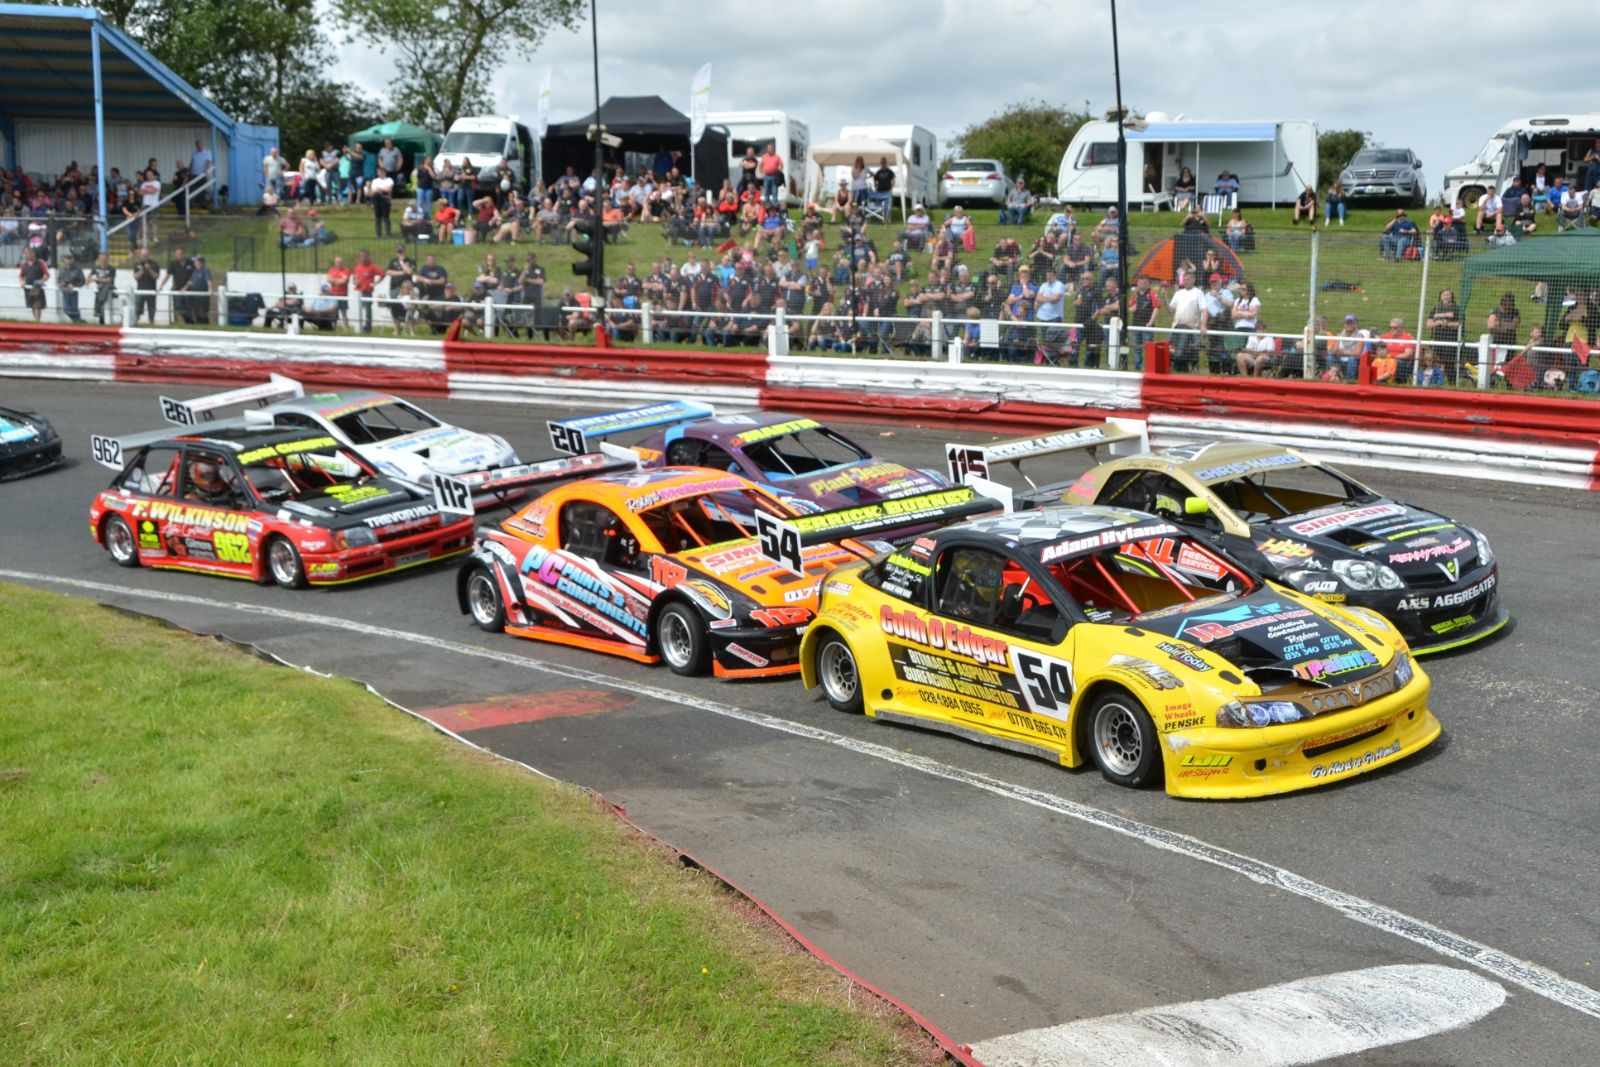 Brand new motorsport event to debut at East of England Arena in 2019